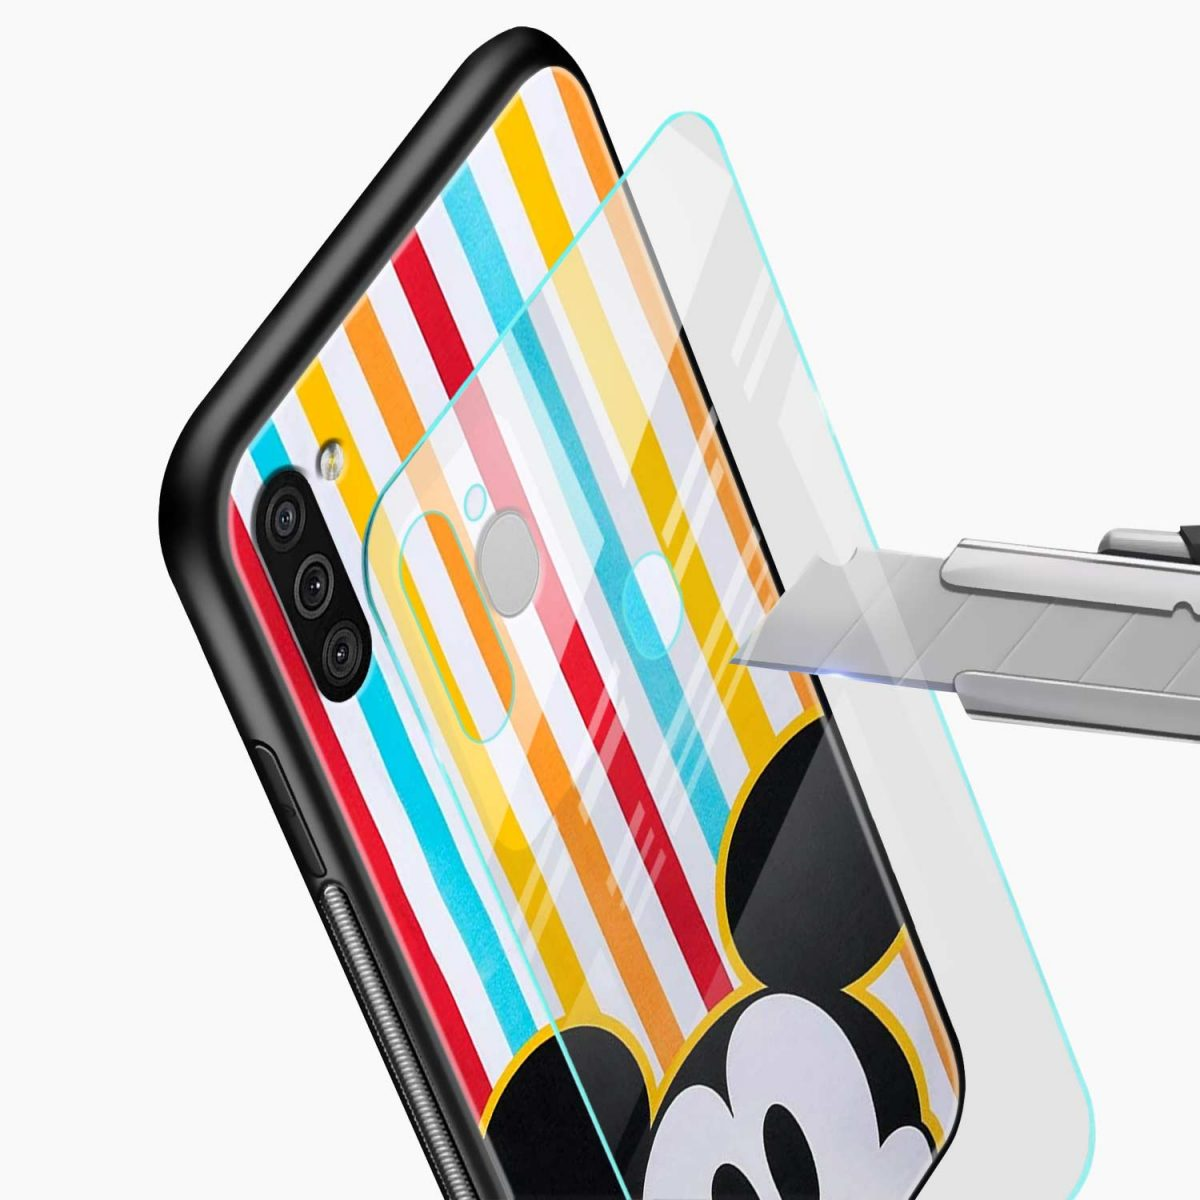 rigid spy mickey mouse glass view samsung galaxy m11 back cover